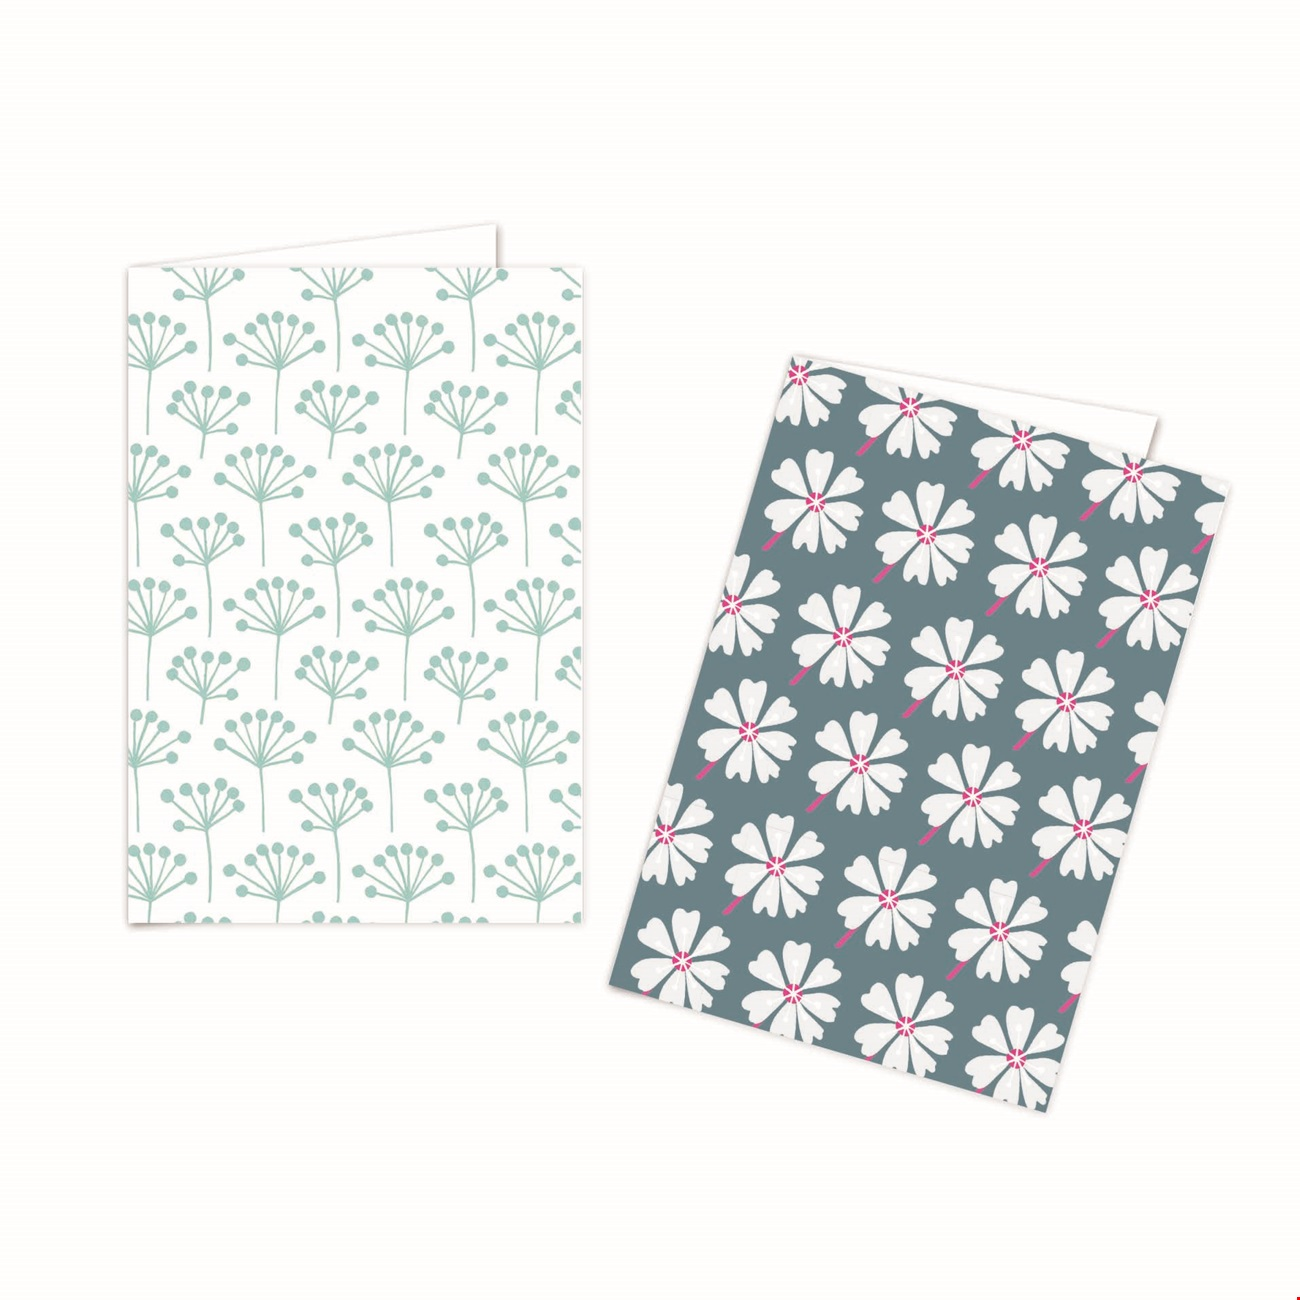 Notecard set - Stems and Sprigs